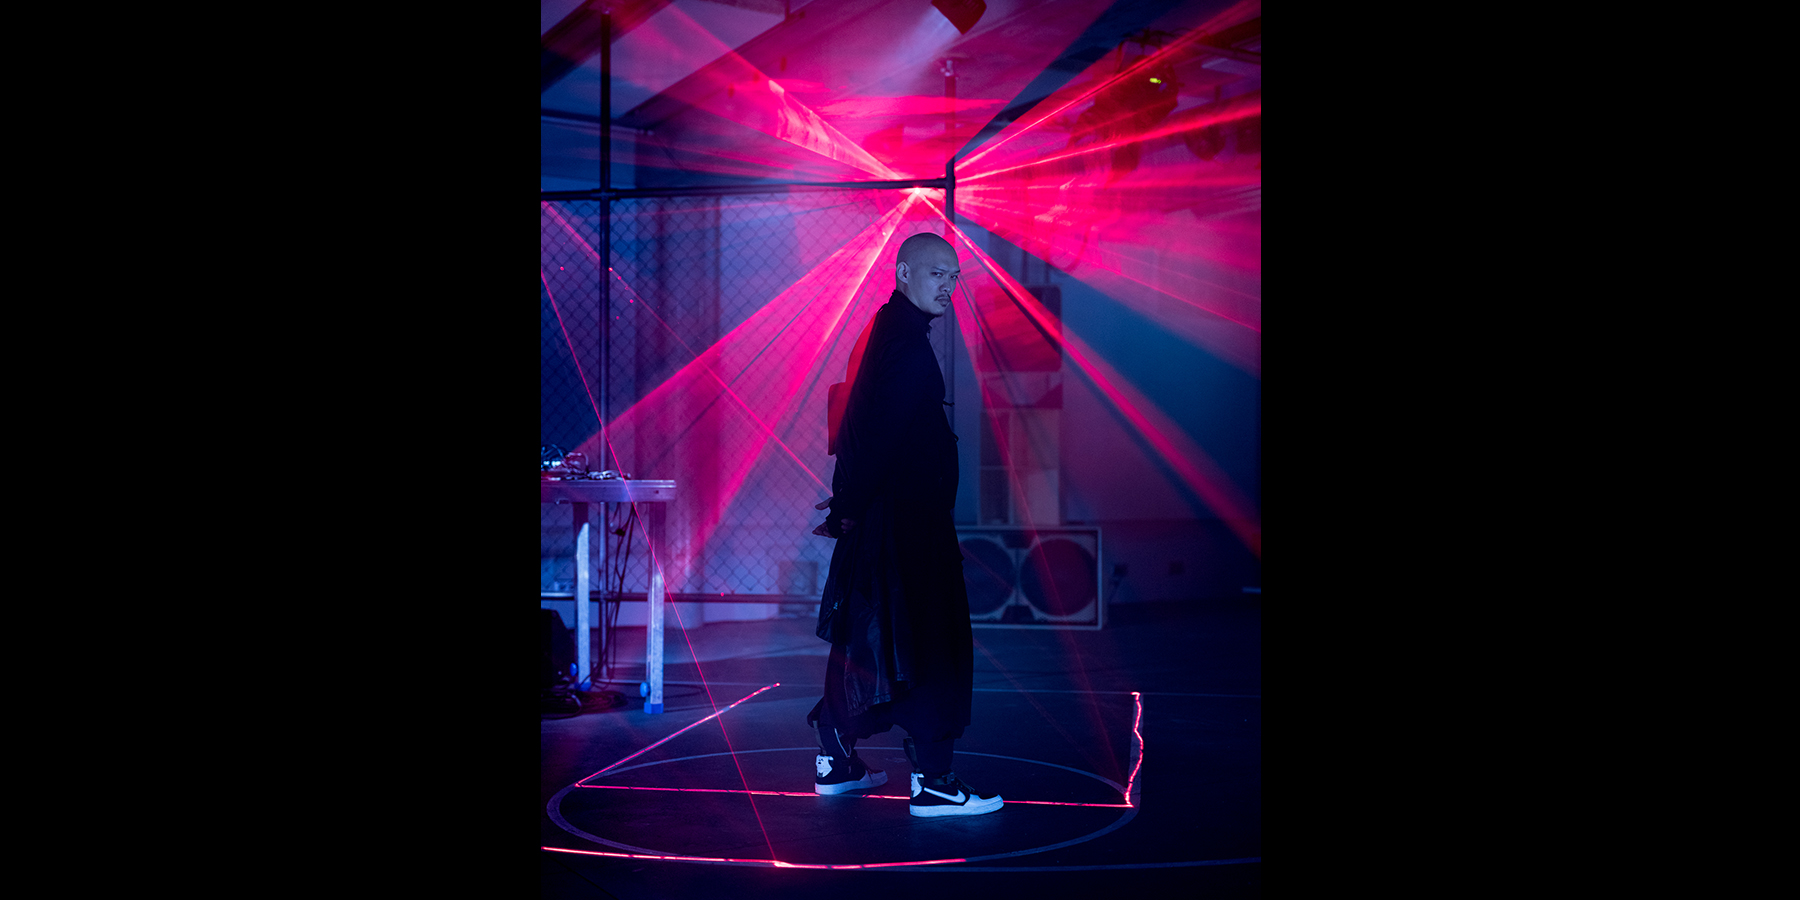 NikeLab Shanghai x ACRONYM® AF1 Downtown Berlin Launch - Errolson Hugh Laser by Jennifer Bin